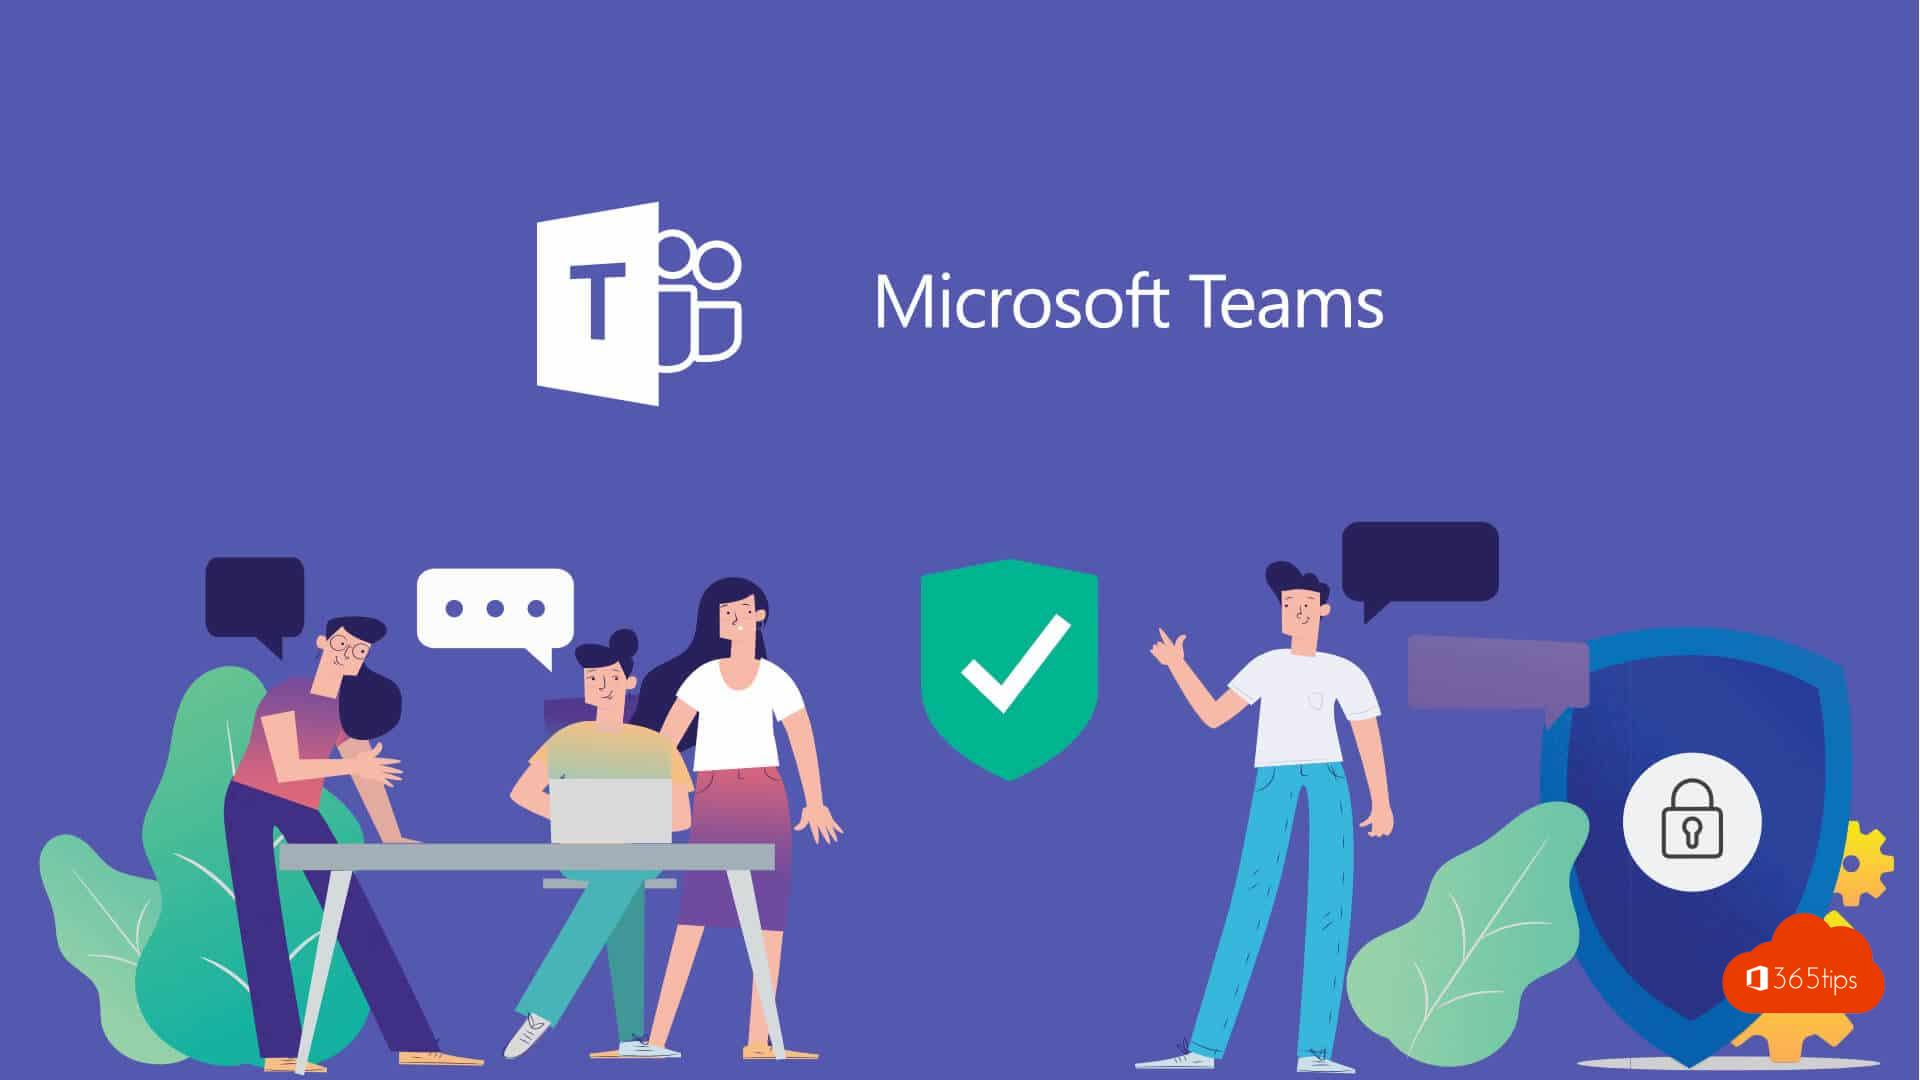 + 100 blogs over Microsoft Teams!